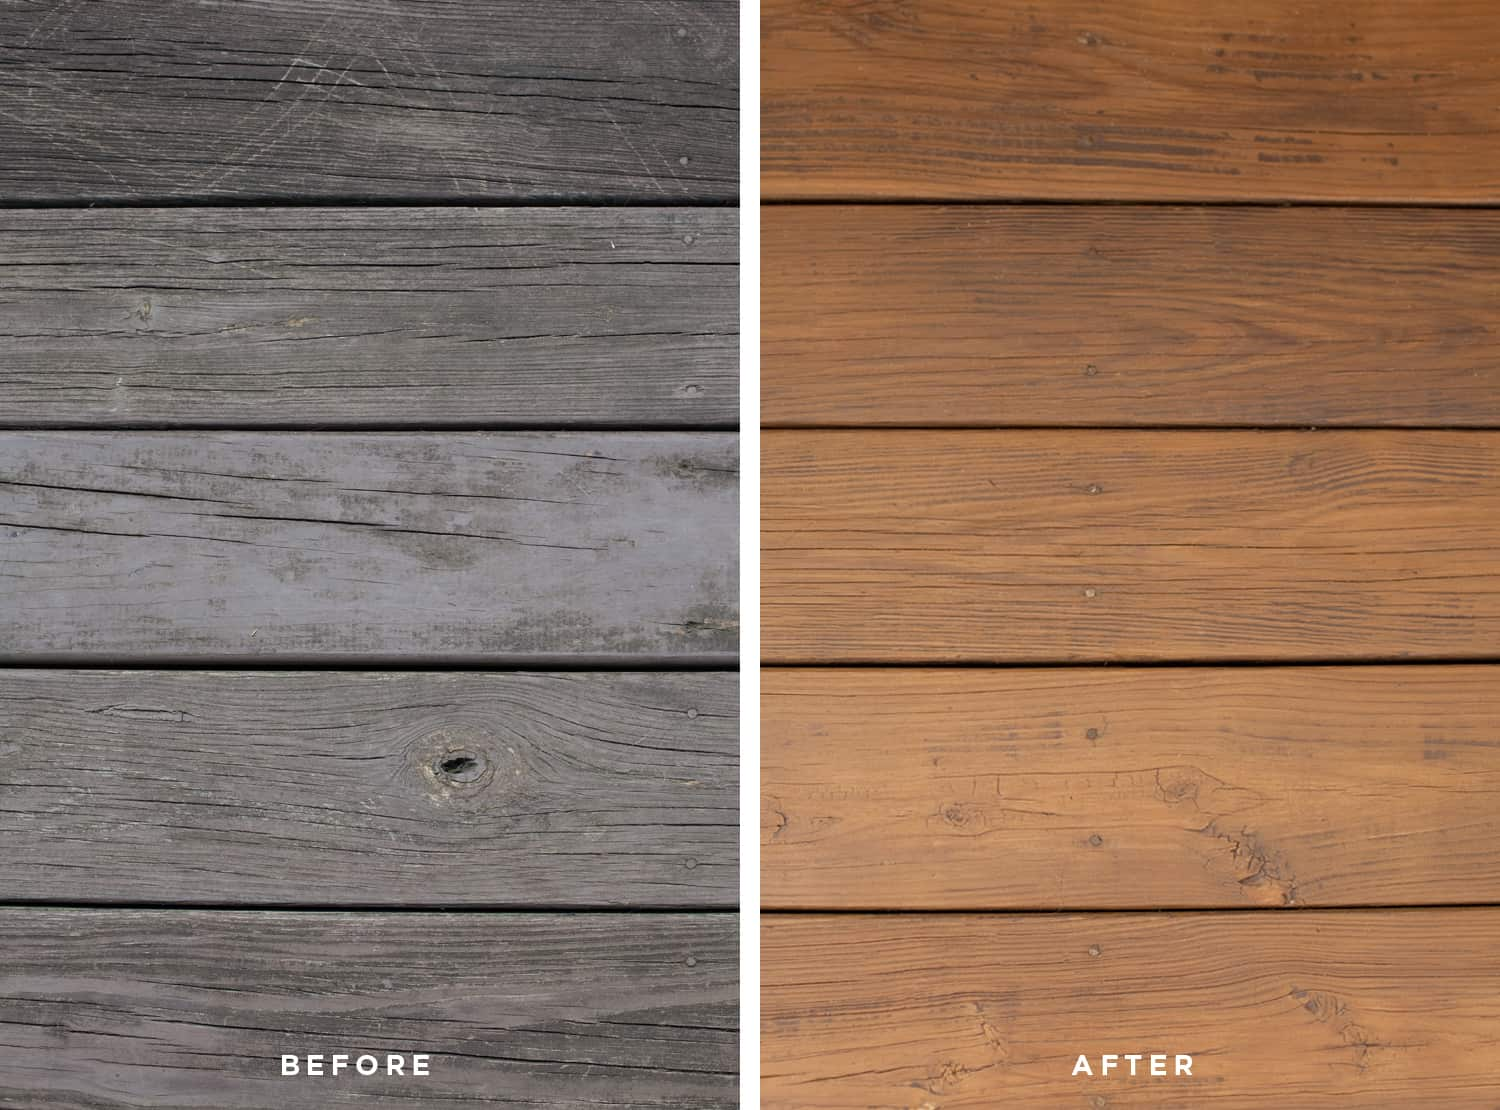 Before + After Deck refinishing